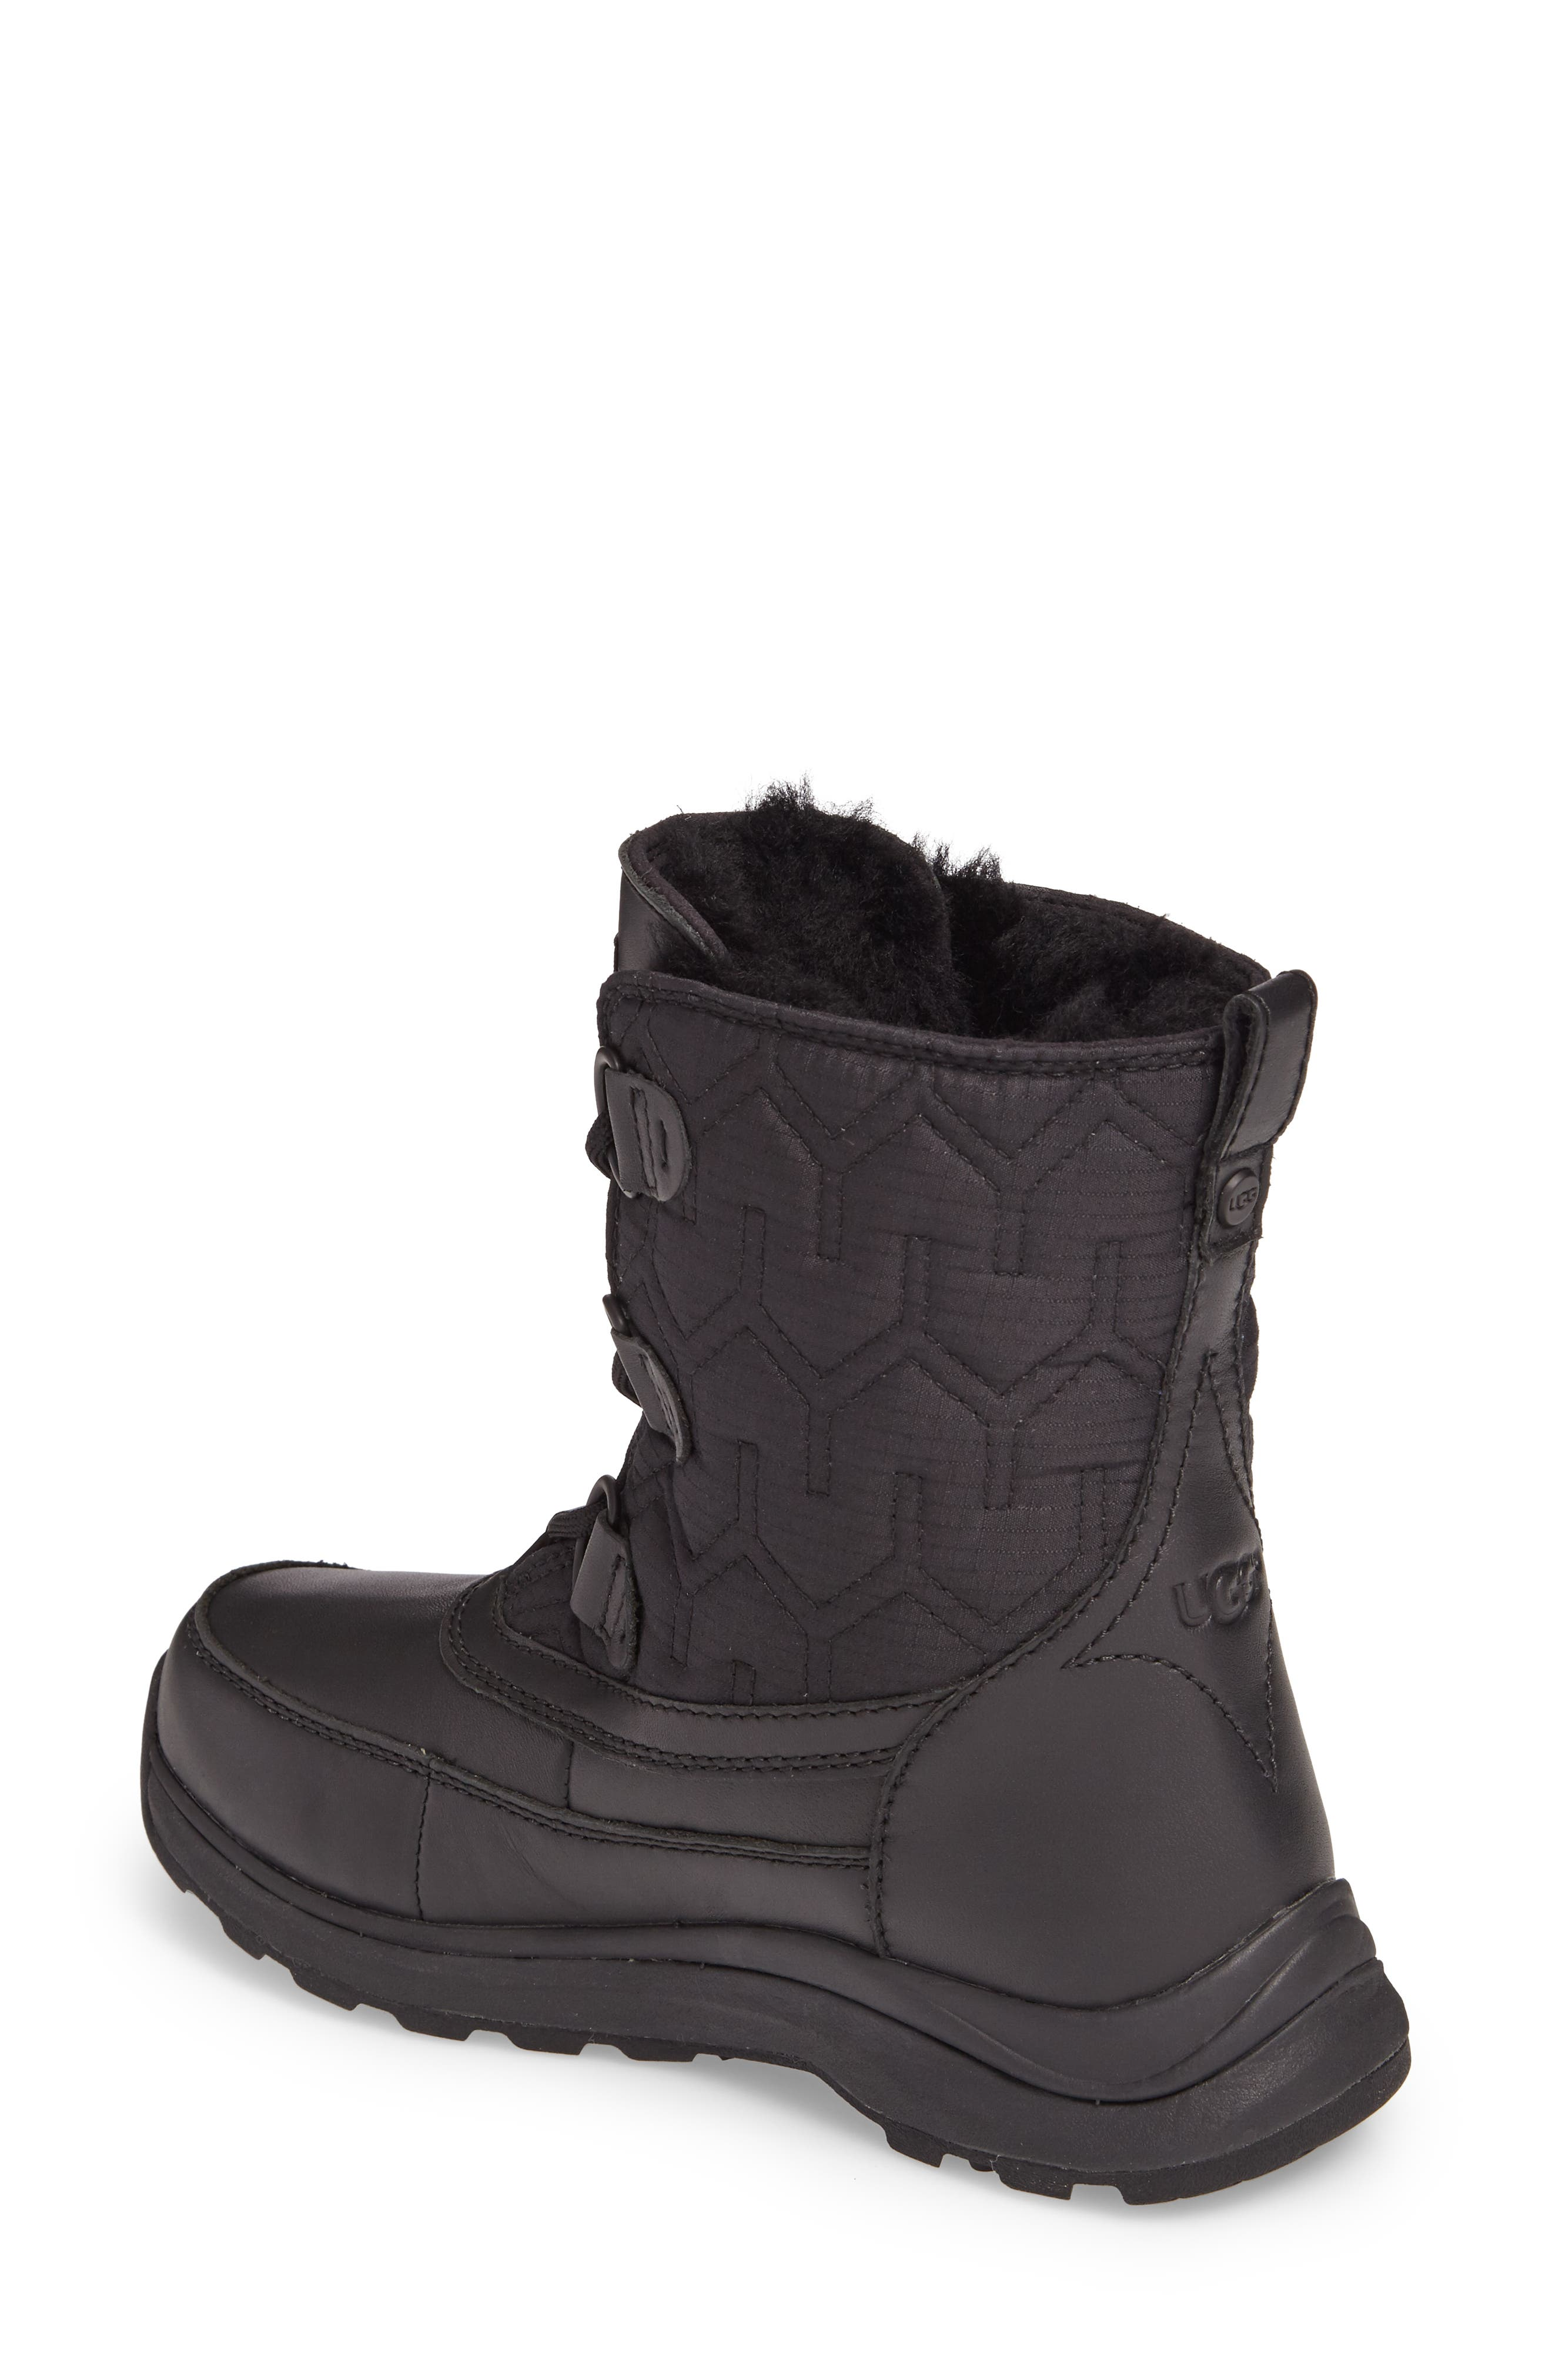 Lachlan Waterproof Insulated Snow Boot,                             Alternate thumbnail 2, color,                             Black Leather